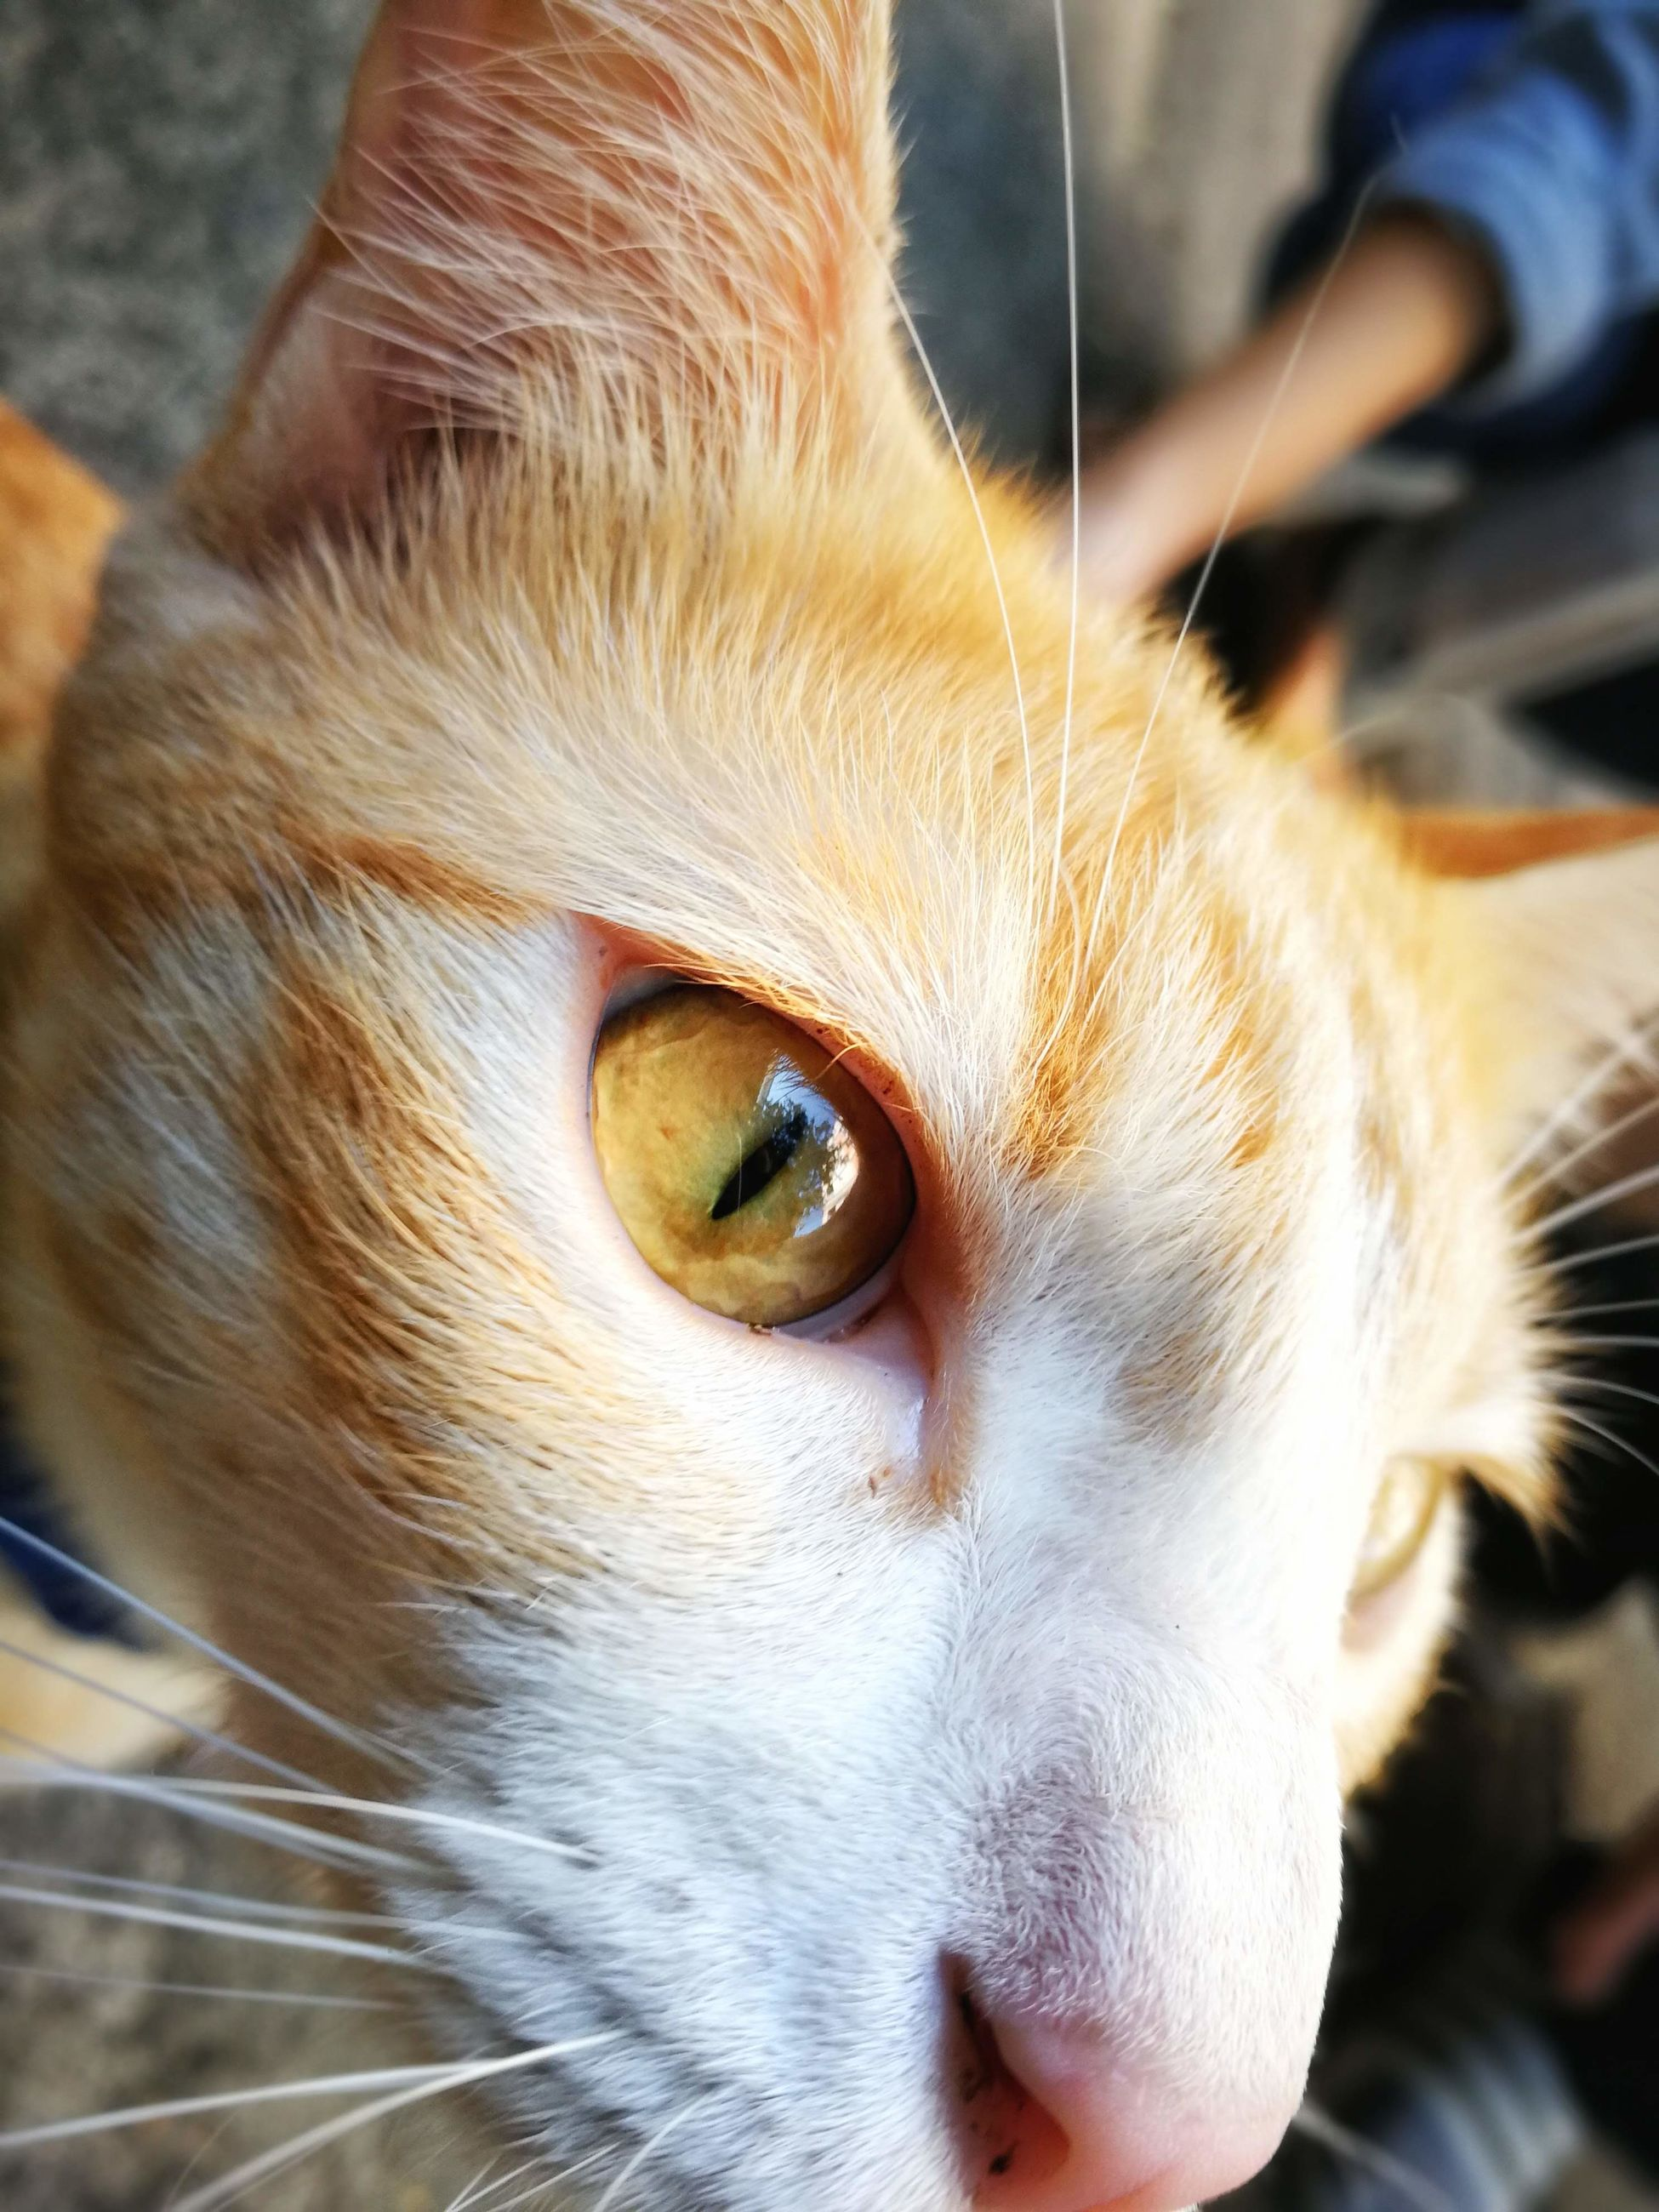 pet, cat, animal, animal themes, mammal, domestic animals, one animal, nose, domestic cat, close-up, whiskers, feline, animal body part, animal head, small to medium-sized cats, skin, eye, felidae, portrait, snout, animal eye, human eye, animal hair, carnivore, looking at camera, looking, cute